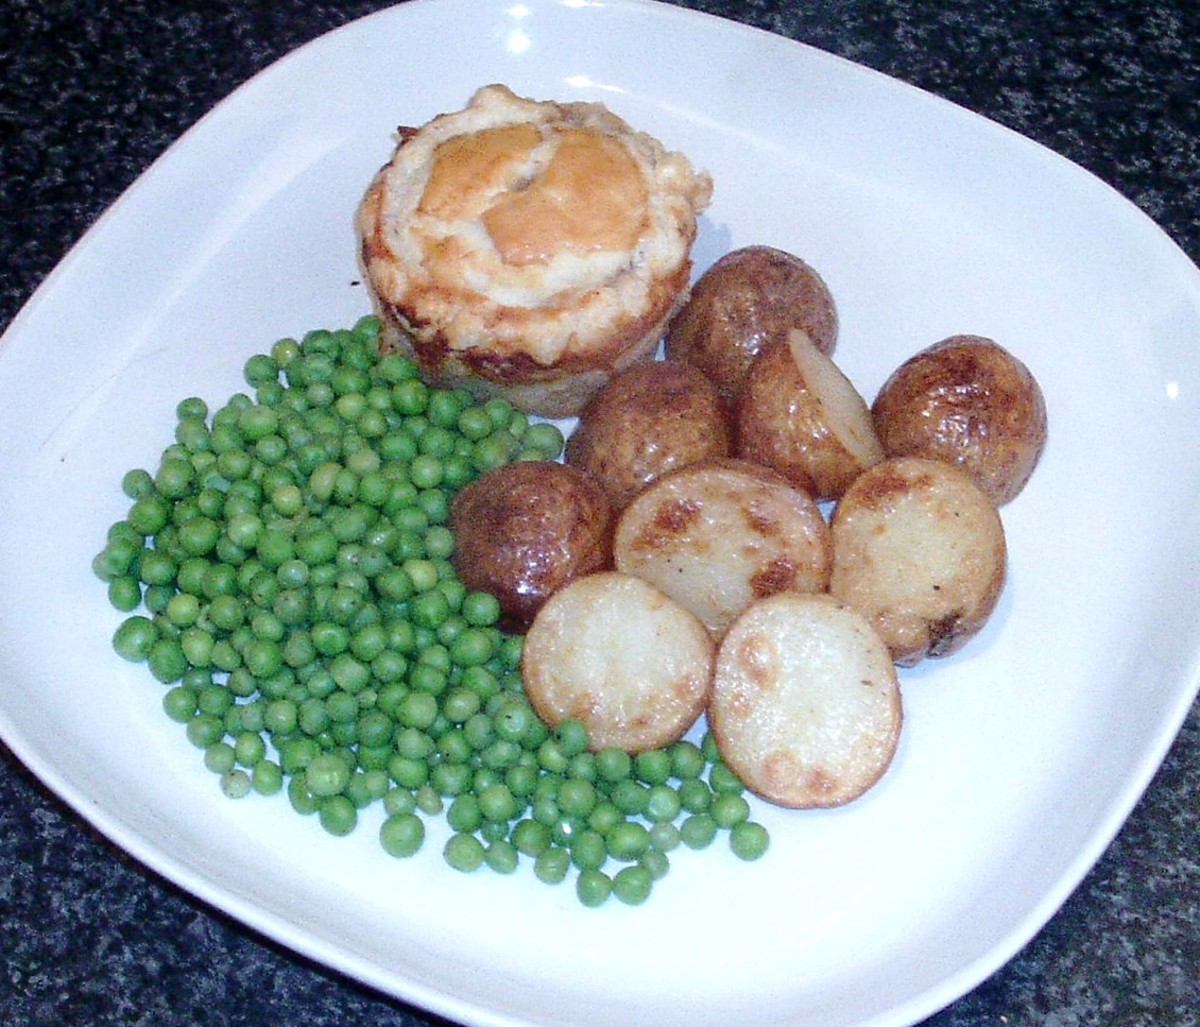 Venison and red wine gravy mini puff pastry pie plated for service with roast potatoes and peas